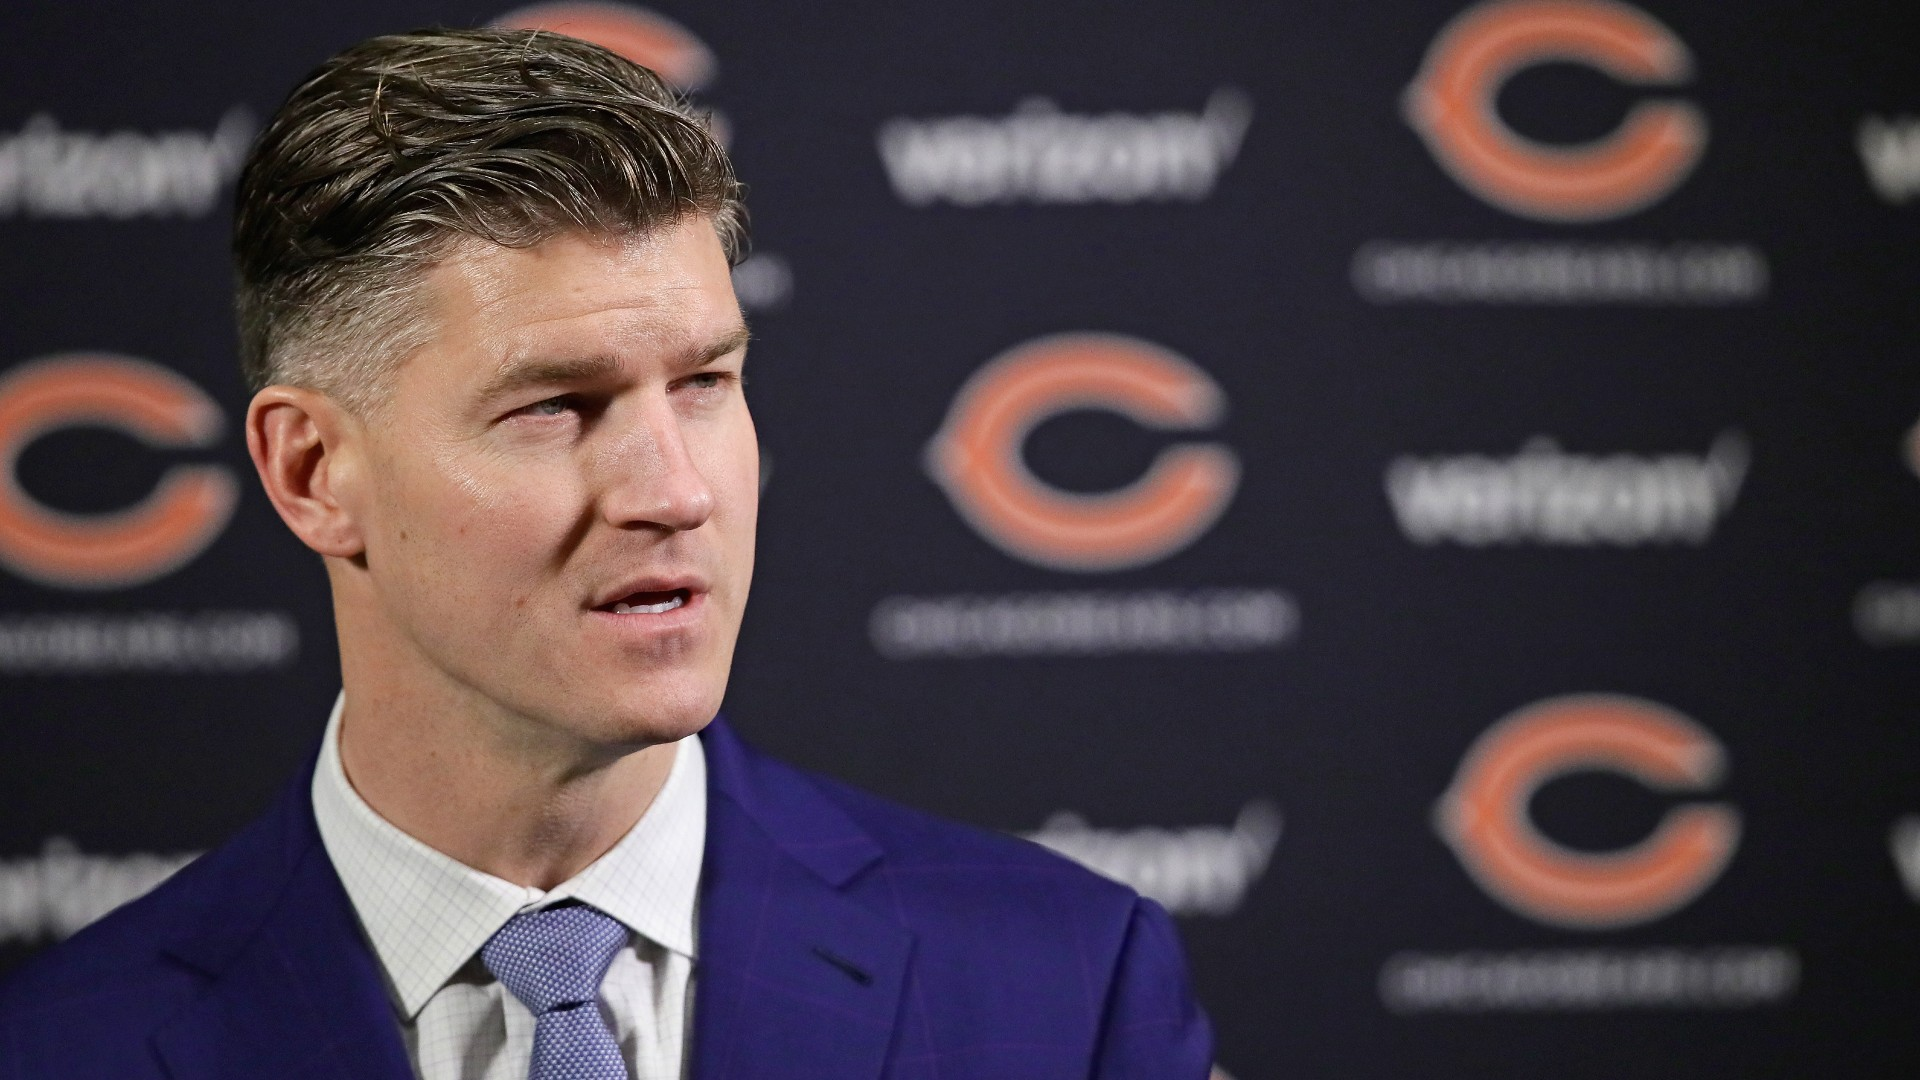 Bears' 2021 Draft Pick: When Will Chicago Pick Next?  Full list of NFL Draft selections